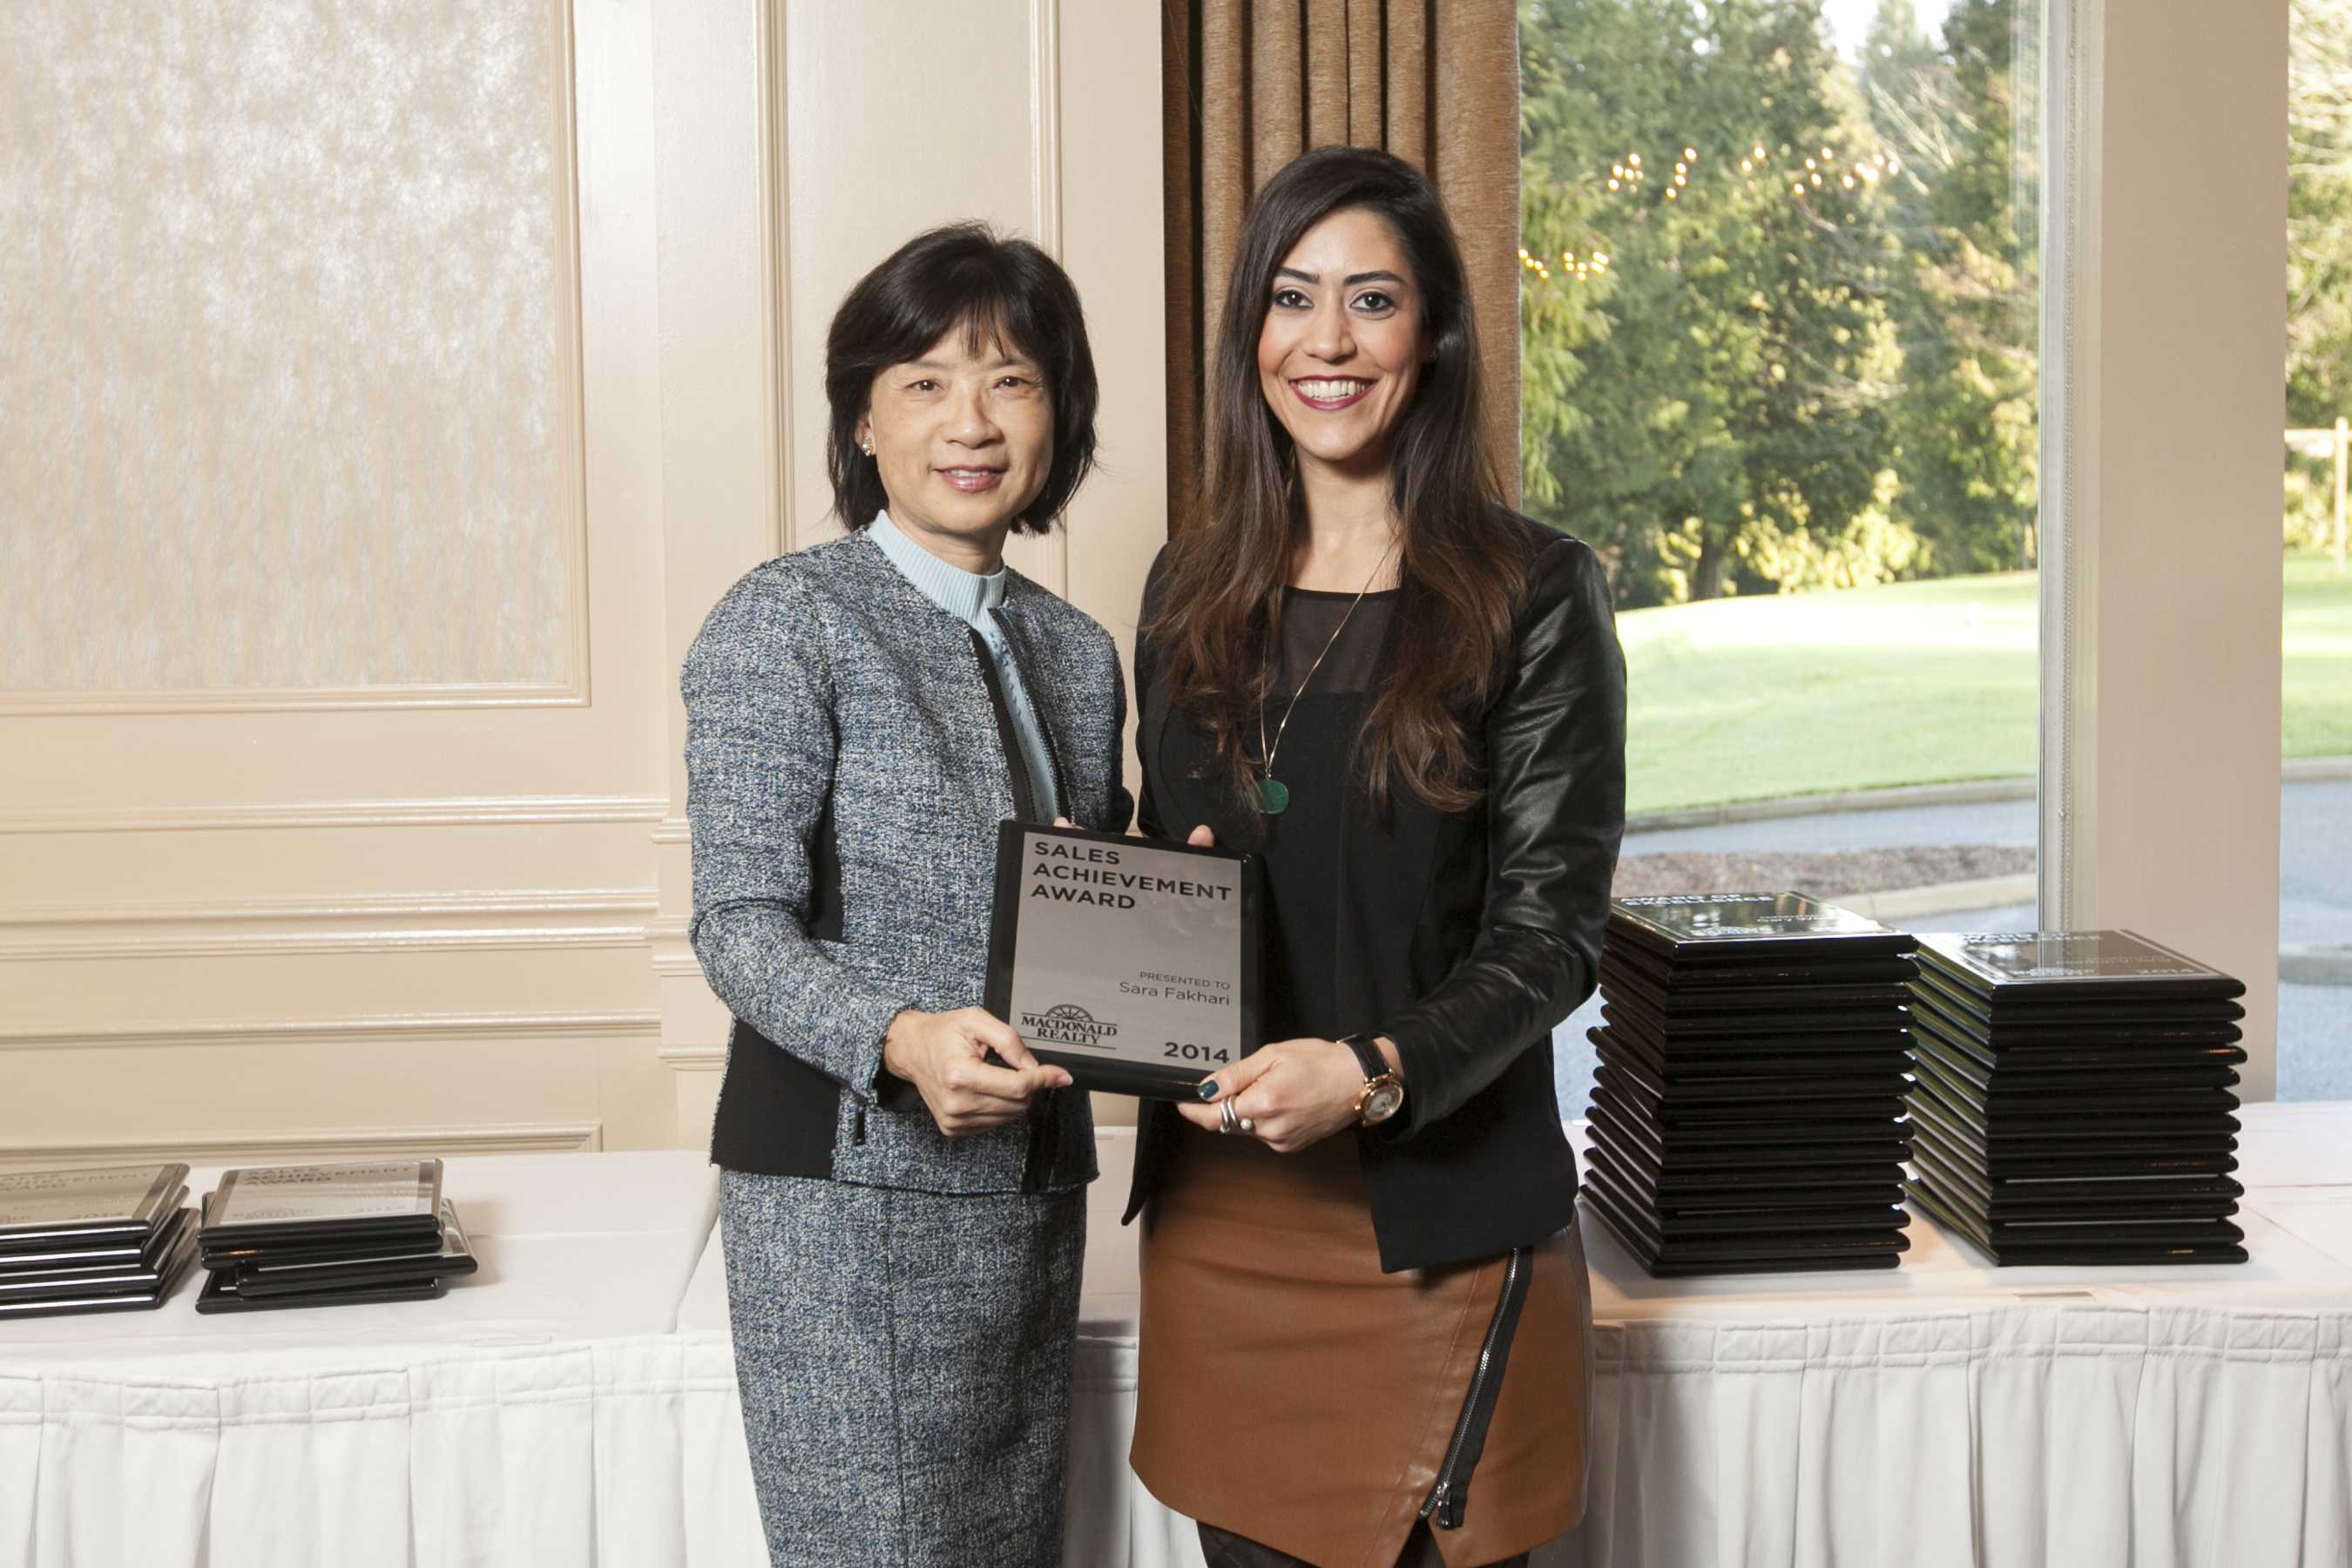 2014 sales achievement award a